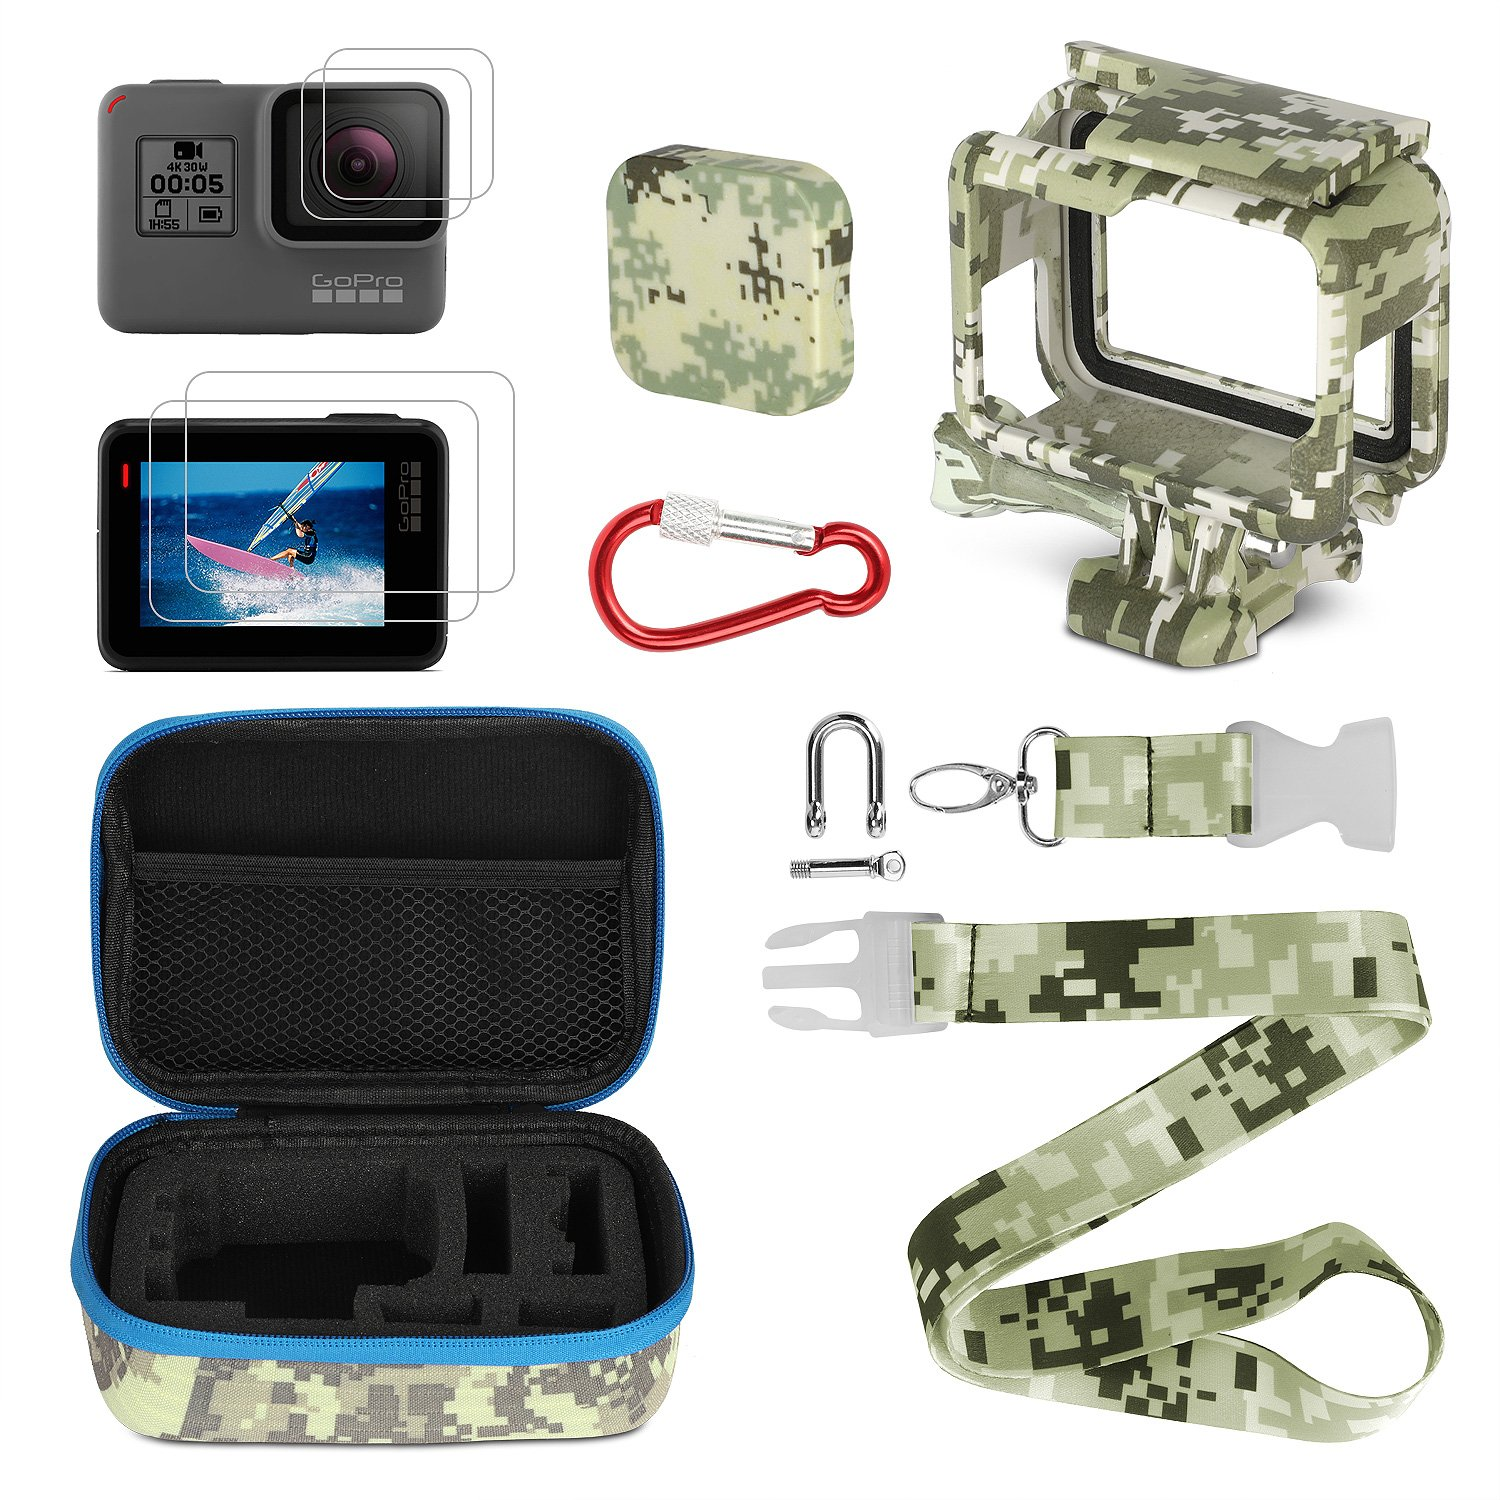 Gopro Accessories Kits, Kitspeed Portable Action Camera Accessory Kit with Camouflage for GoPro Hero 5/Hero 6/Hero (2018), Storage Bag, Lens Cap Cover,Protective Case,Carabiner, Strap,Lens Film